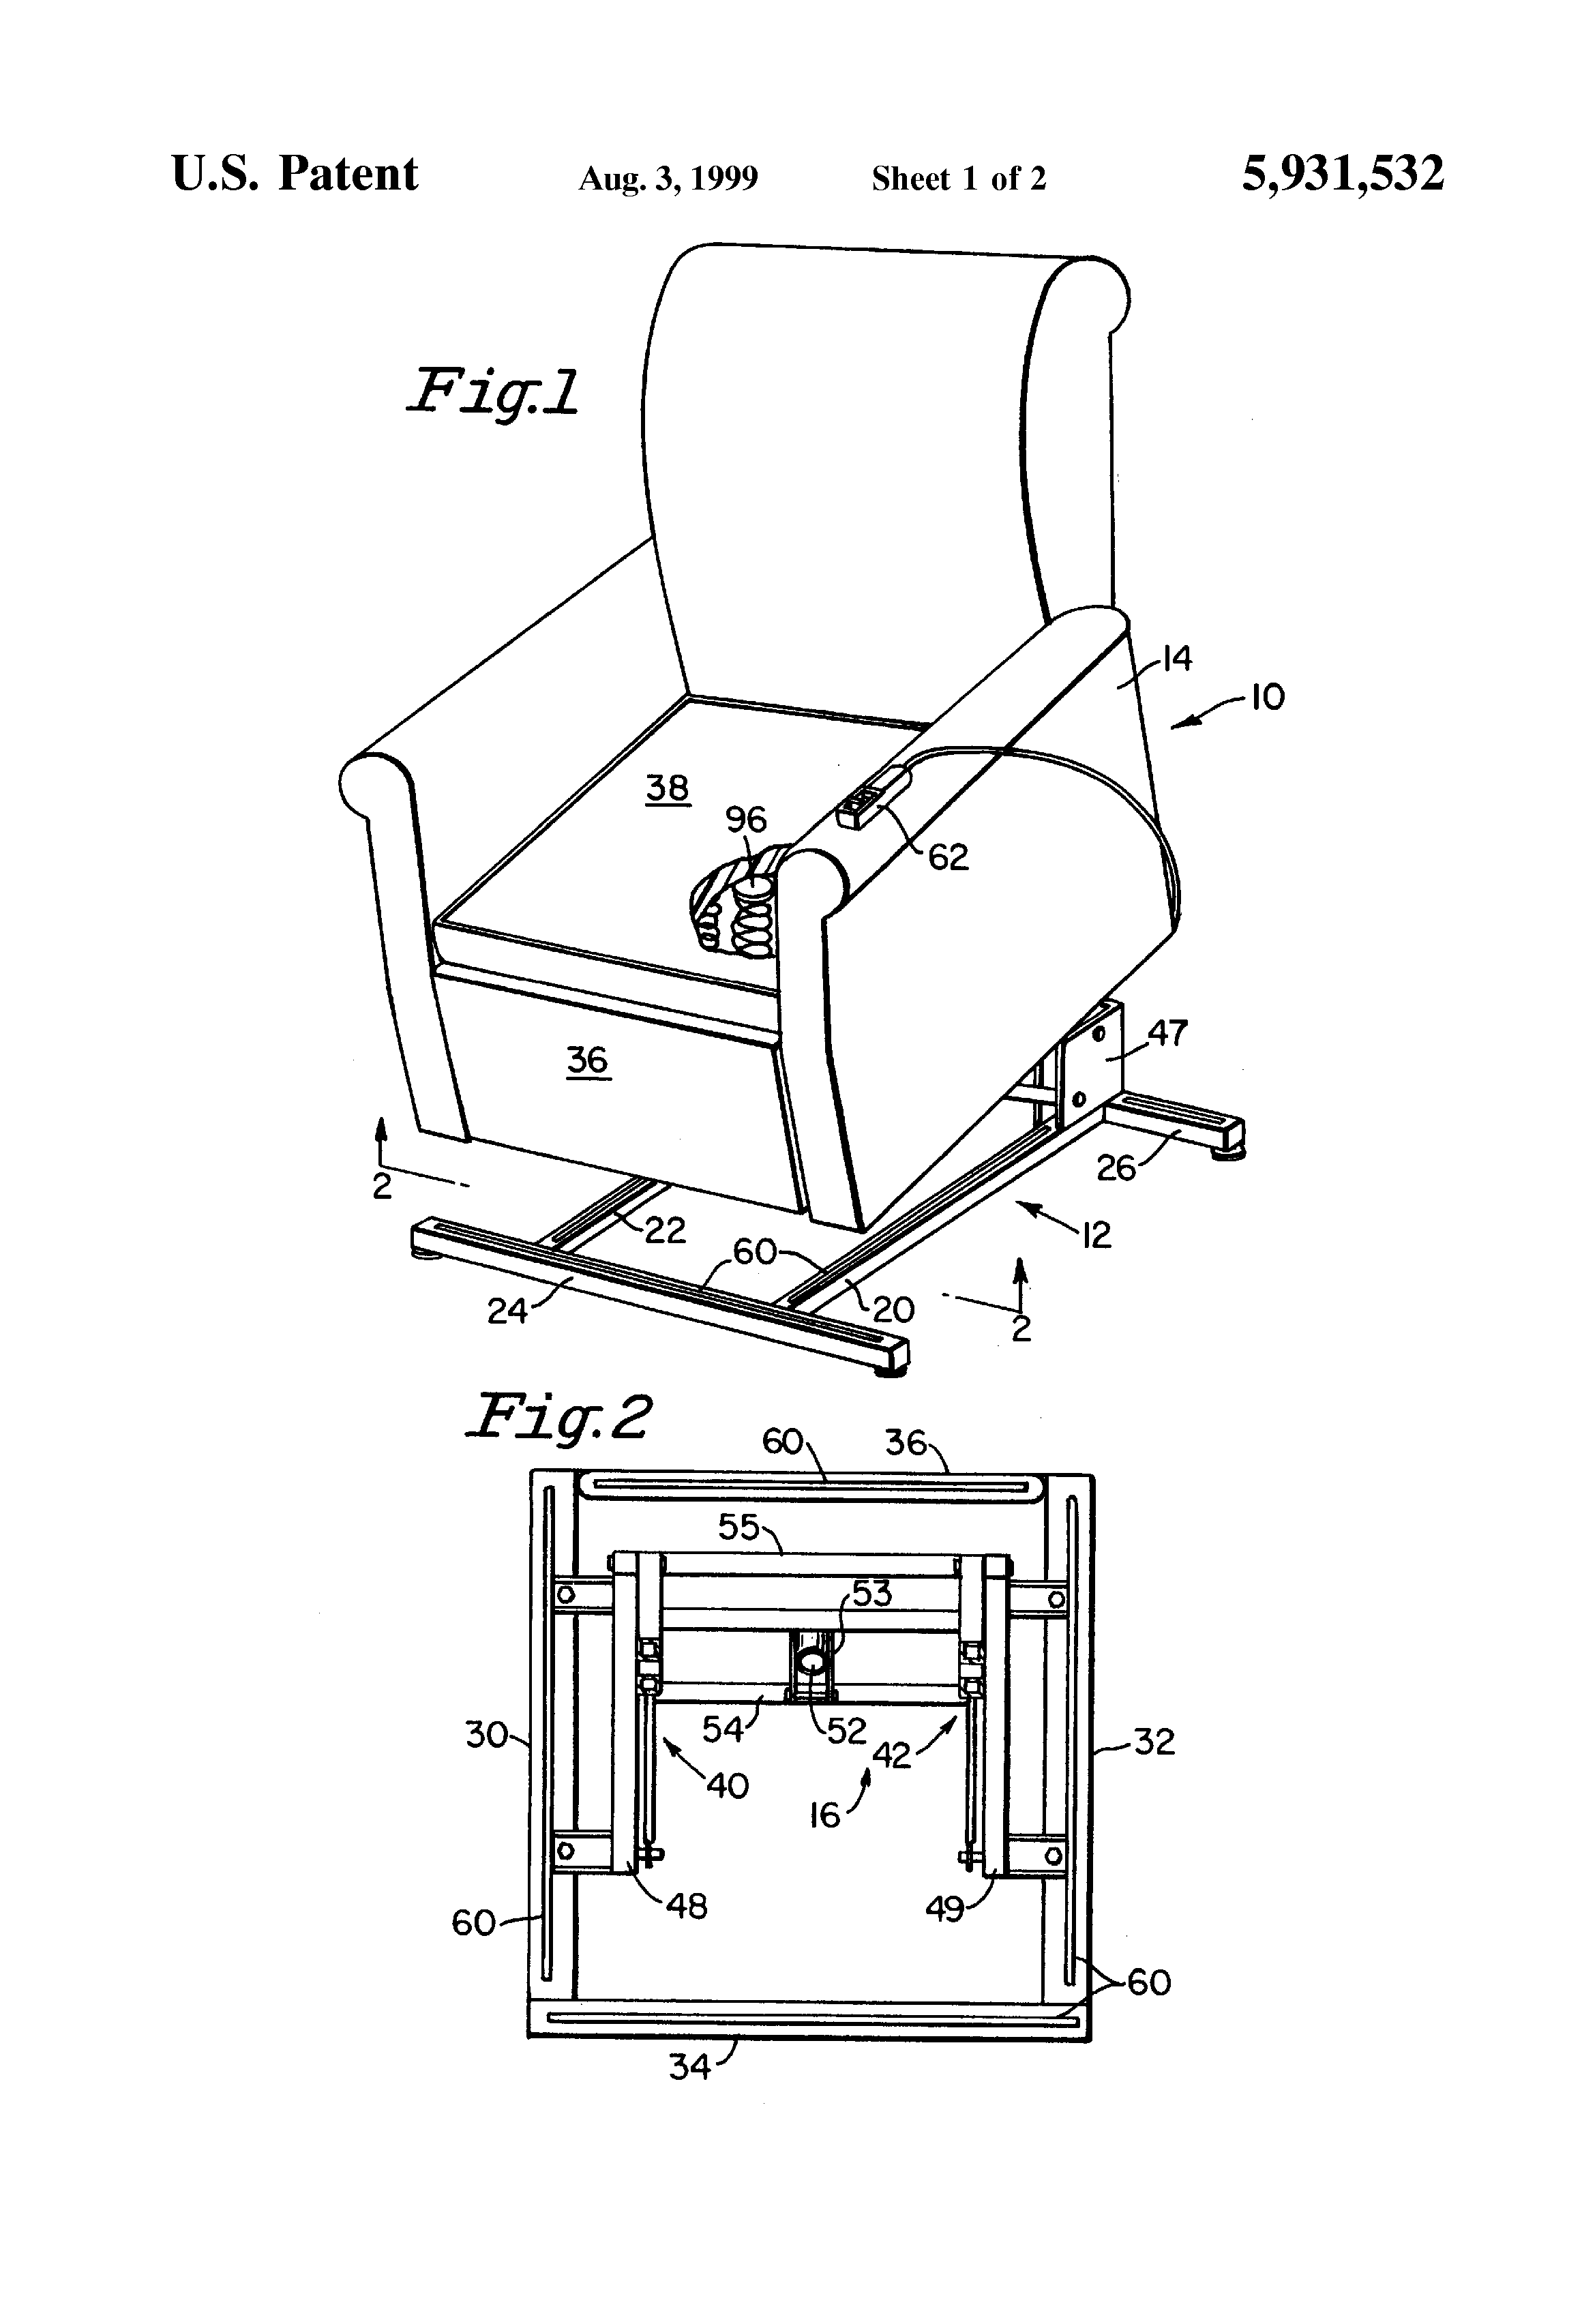 [DIAGRAM] Patent Us8403409 Lift Chair And Recliner Wiring